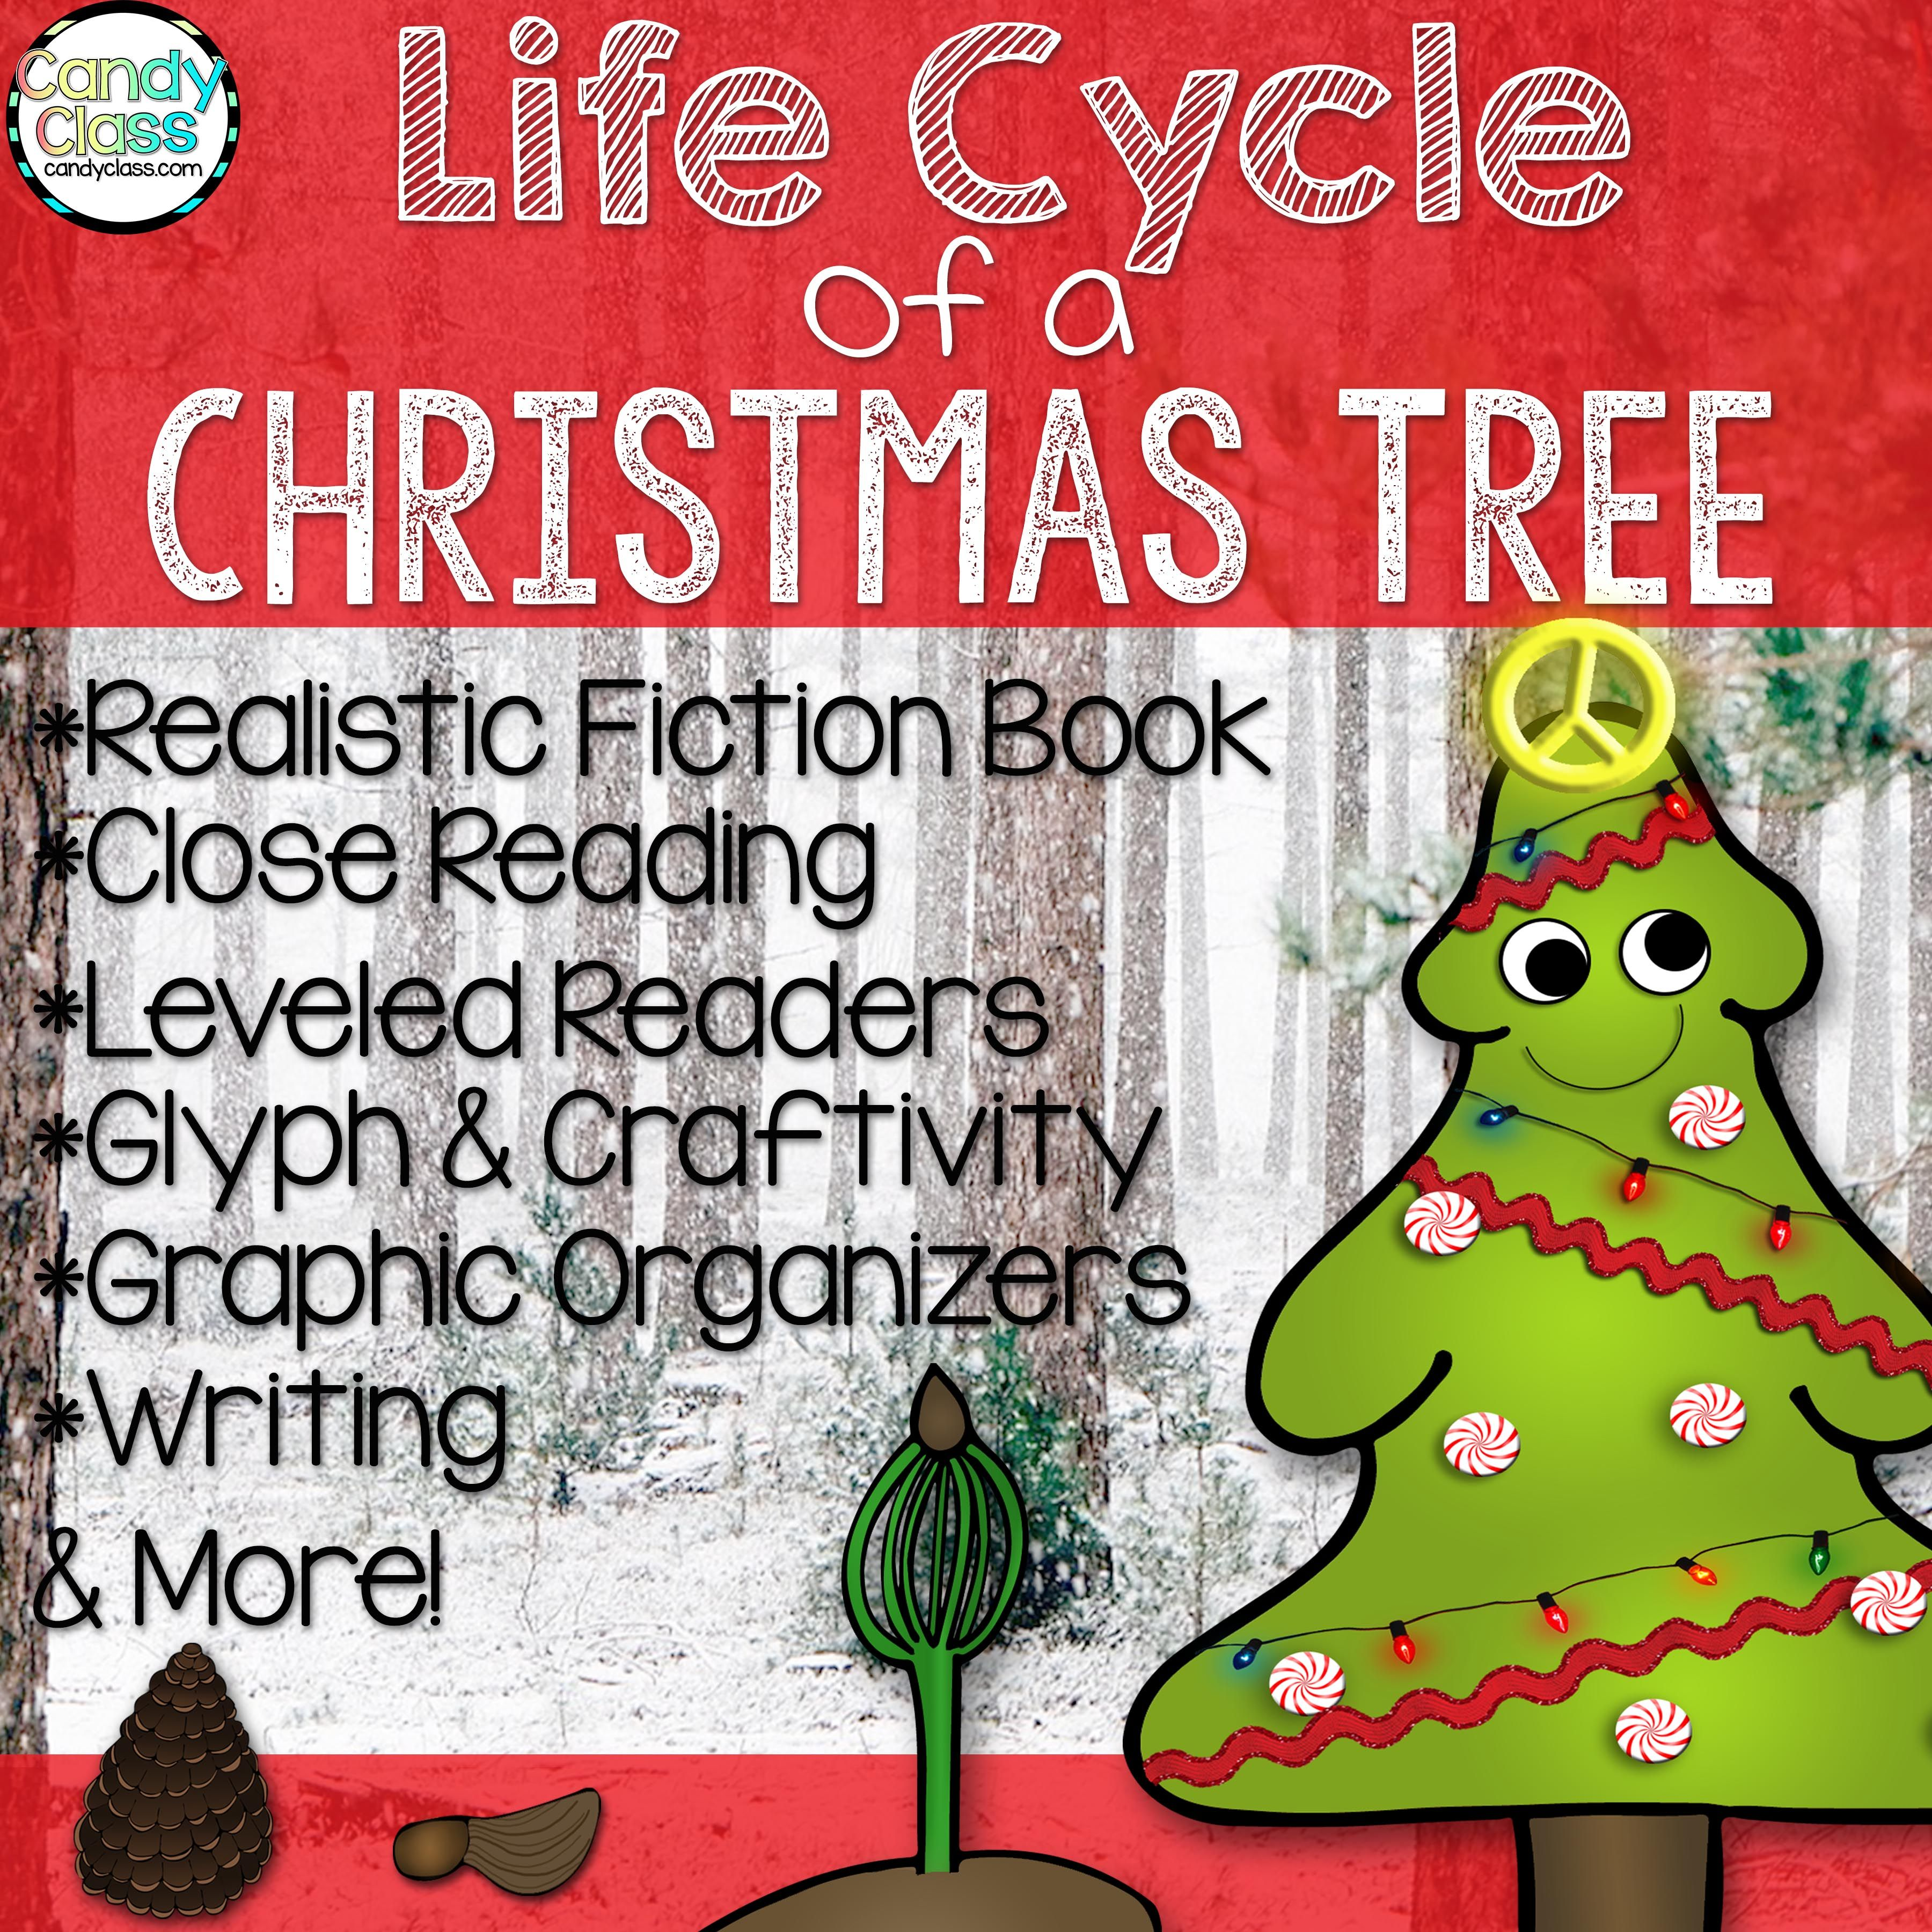 Christmas Tree Graphic Organizer: Conifer Christmas Tree Life Cycle: Christmas Reading